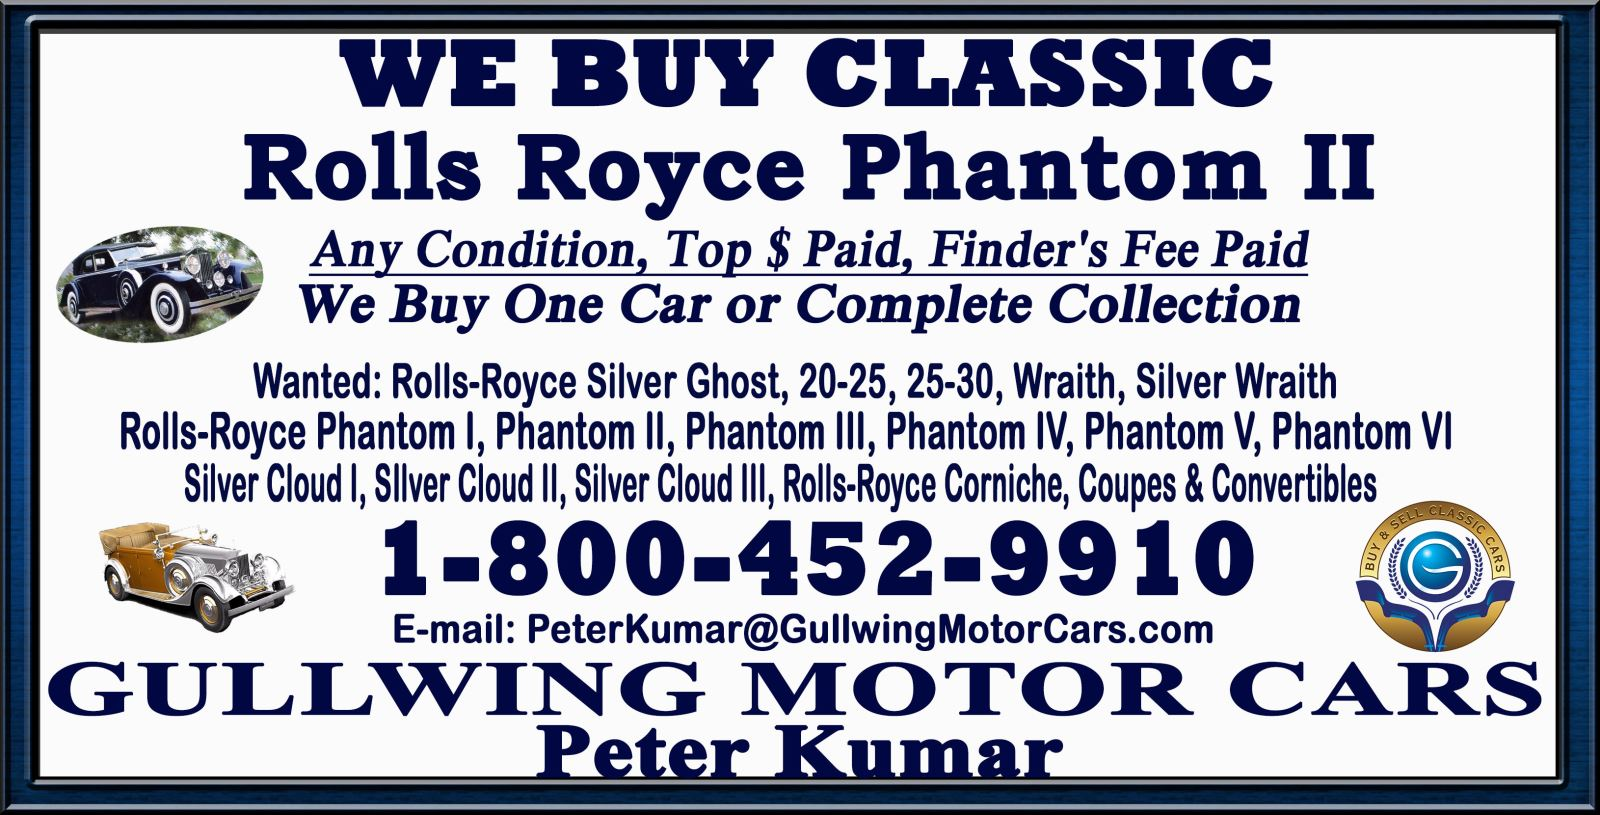 Sell Classic Rolls Royce Silver Cloud III | Call Gullwing Motor if Vintage Rolls Royce Silver Cloud III For Sale